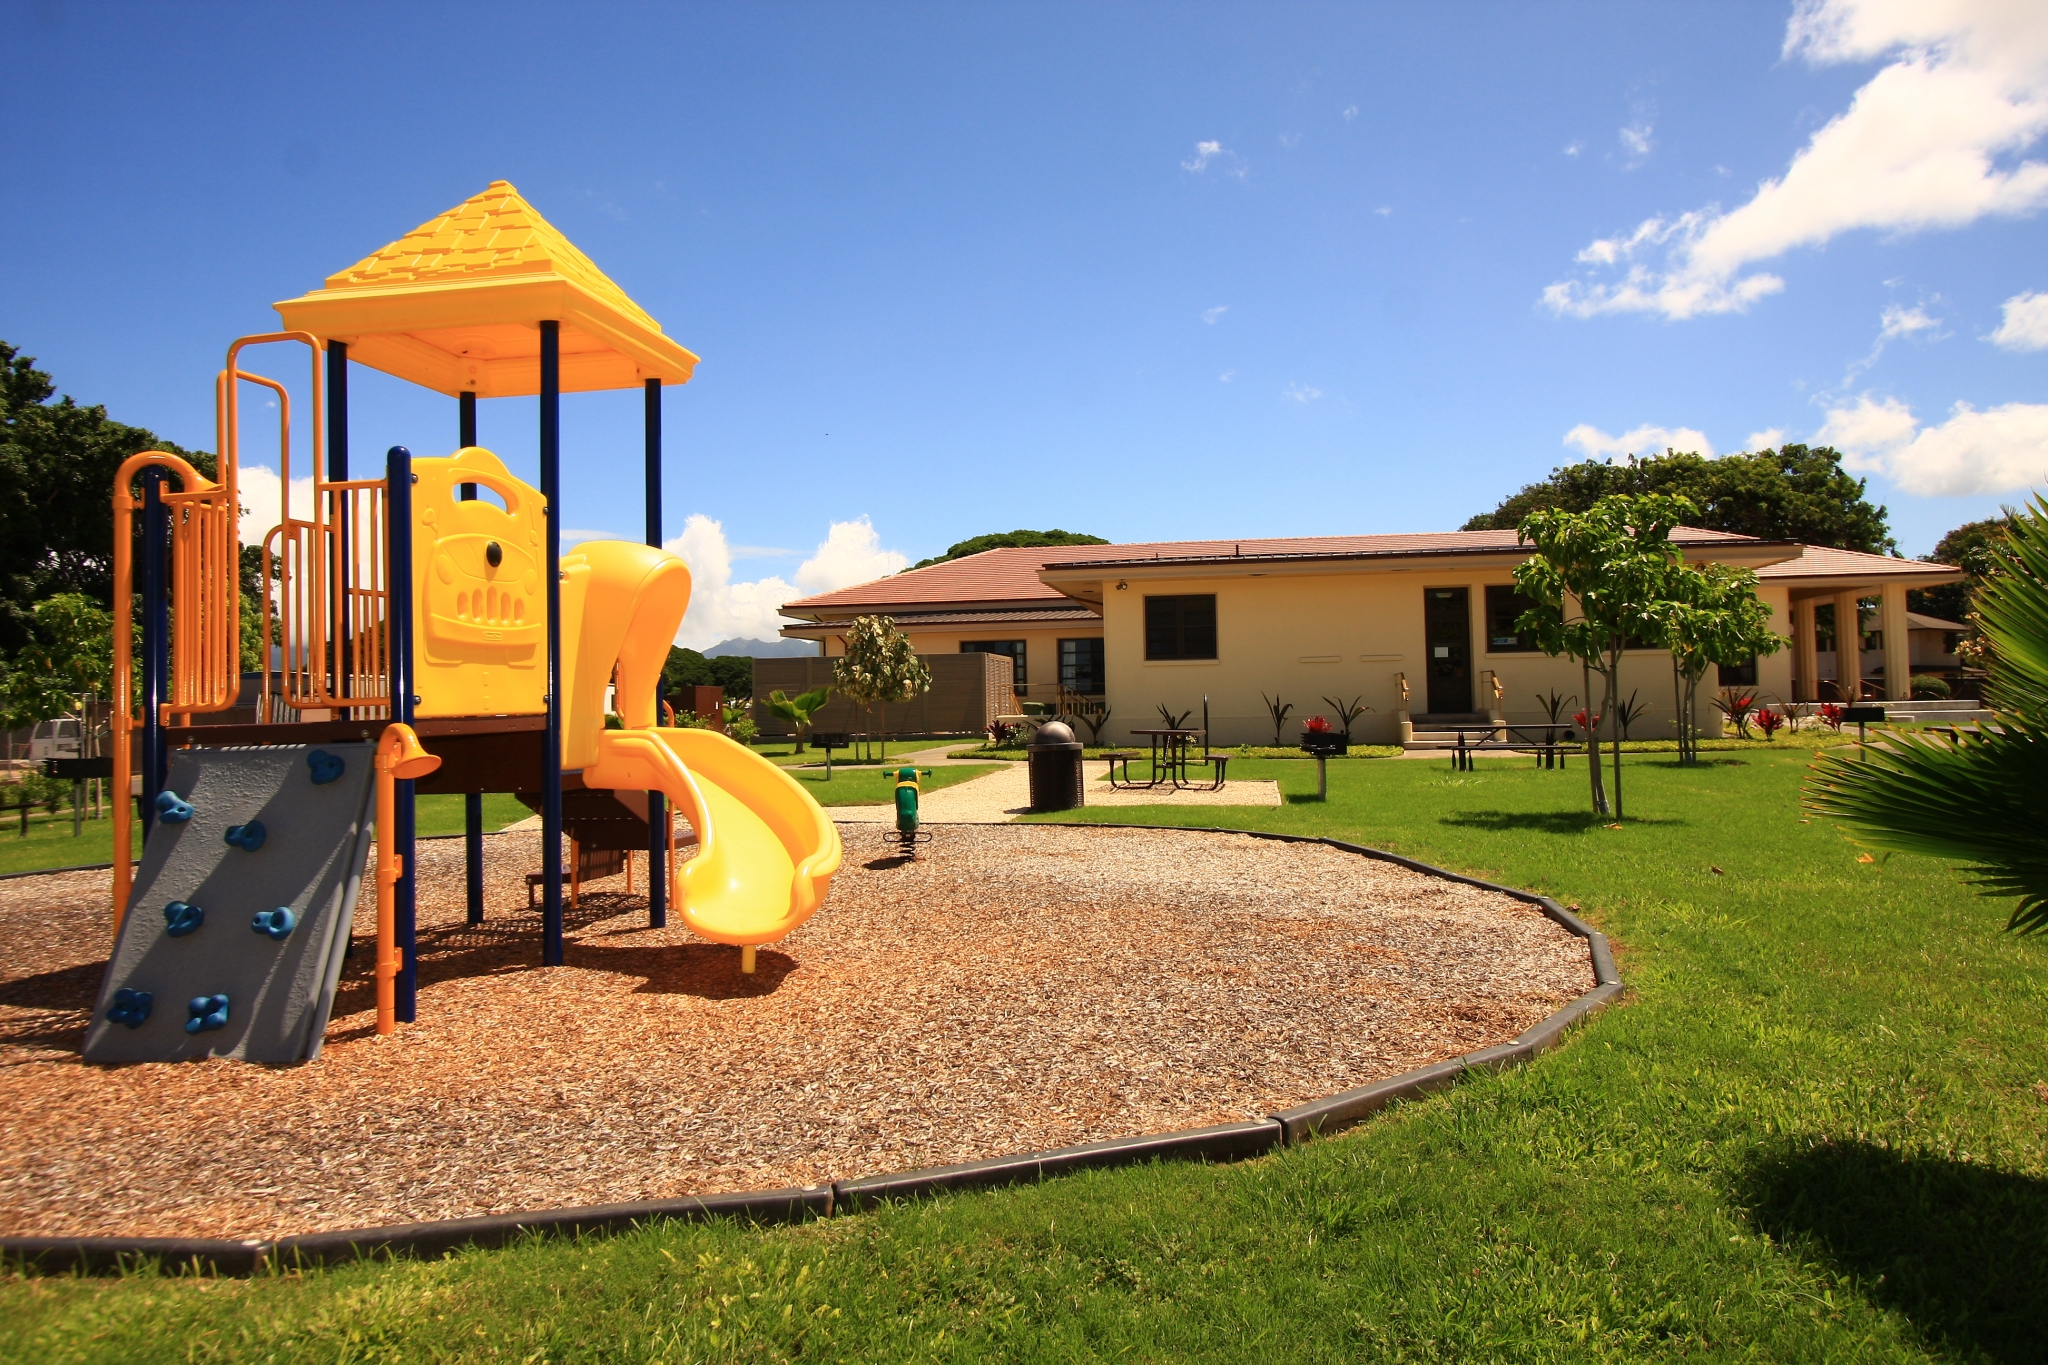 Hickam Communities | Community Center | Playground |